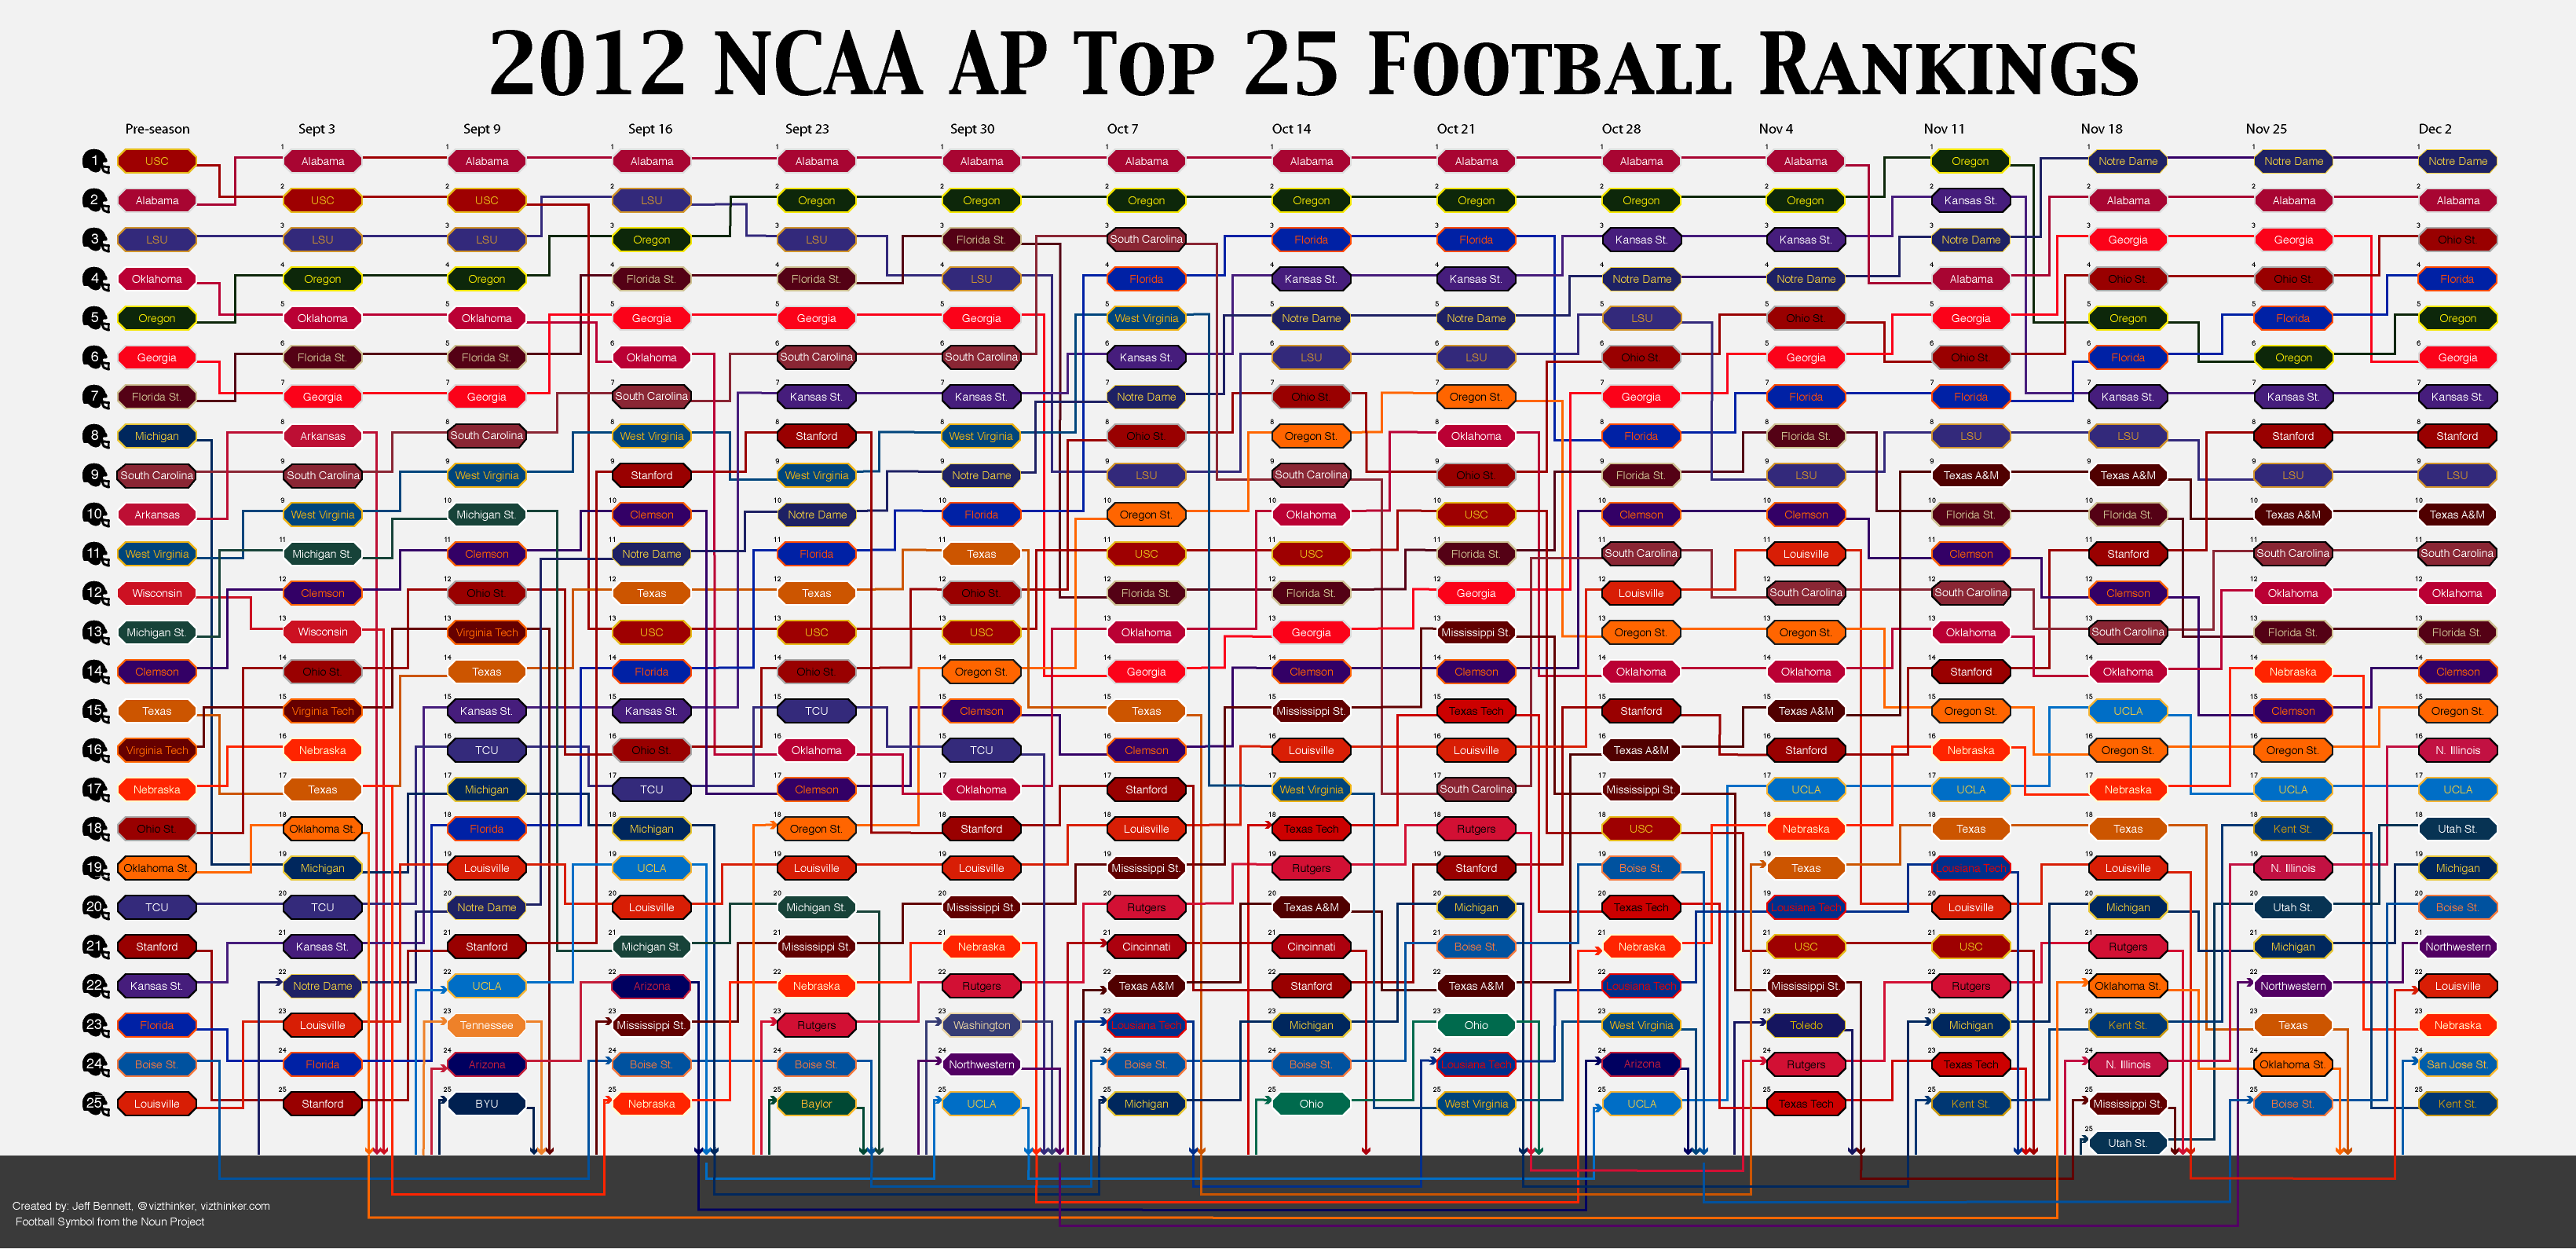 2012 AP College Football Rankings | Information Visualized